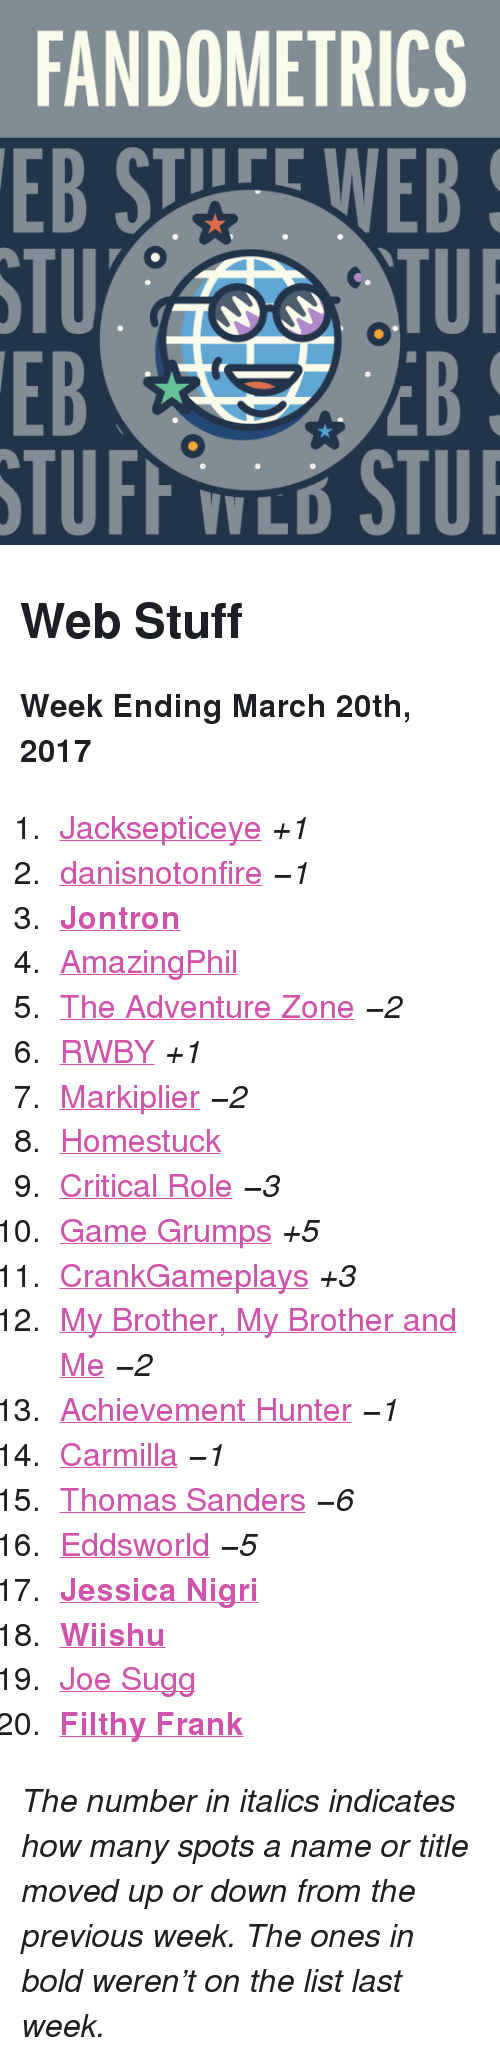 """jontron: FANDOMETRICS  EB STUFE WEB  STU  EB  TUI  EB  V L <h2>Web Stuff</h2><p><b>Week Ending March 20th, 2017</b></p><ol><li><a href=""""http://www.tumblr.com/search/jacksepticeye"""">Jacksepticeye</a><i>+1</i></li>  <li><a href=""""http://www.tumblr.com/search/danisnotonfire"""">danisnotonfire</a><i><i><i><i>−1</i></i></i></i></li>  <li><a href=""""http://www.tumblr.com/search/jontron""""><b>Jontron</b></a></li>  <li><a href=""""http://www.tumblr.com/search/amazingphil"""">AmazingPhil</a></li>  <li><a href=""""http://www.tumblr.com/search/the%20adventure%20zone"""">The Adventure Zone</a><i><i><i><i>−2</i></i></i></i></li>  <li><a href=""""http://www.tumblr.com/search/rwby"""">RWBY</a><i>+1</i></li>  <li><a href=""""http://www.tumblr.com/search/markiplier"""">Markiplier</a><i><i><i><i>−2</i></i></i></i></li>  <li><a href=""""http://www.tumblr.com/search/homestuck"""">Homestuck</a></li>  <li><a href=""""http://www.tumblr.com/search/critical%20role"""">Critical Role</a><i><i><i><i>−3</i></i></i></i></li>  <li><a href=""""http://www.tumblr.com/search/game%20grumps"""">Game Grumps</a><i>+5</i></li>  <li><a href=""""http://www.tumblr.com/search/crankgameplays"""">CrankGameplays</a><i>+3</i></li>  <li><a href=""""http://www.tumblr.com/search/mbmbam"""">My Brother, My Brother and Me</a><i><i><i><i>−2</i></i></i></i></li>  <li><a href=""""http://www.tumblr.com/search/achievement%20hunter"""">Achievement Hunter</a><i><i><i><i>−1</i></i></i></i></li>  <li><a href=""""http://www.tumblr.com/search/carmilla"""">Carmilla</a><i><i><i><i>−1</i></i></i></i></li>  <li><a href=""""http://www.tumblr.com/search/thomas%20sanders"""">Thomas Sanders</a><i><i><i><i>−6</i></i></i></i></li>  <li><a href=""""http://www.tumblr.com/search/eddsworld"""">Eddsworld</a><i><i><i><i>−5</i></i></i></i></li>  <li><a href=""""http://www.tumblr.com/search/jessica%20nigri""""><b>Jessica Nigri</b></a></li>  <li><a href=""""http://www.tumblr.com/search/wiishu""""><b>Wiishu</b></a></li>  <li><a href=""""http://www.tumblr.com/search/joe%20sugg"""">Joe Sugg</a></li>  <li><a href=""""http://www.tumblr.com/search/filthy%20fra"""